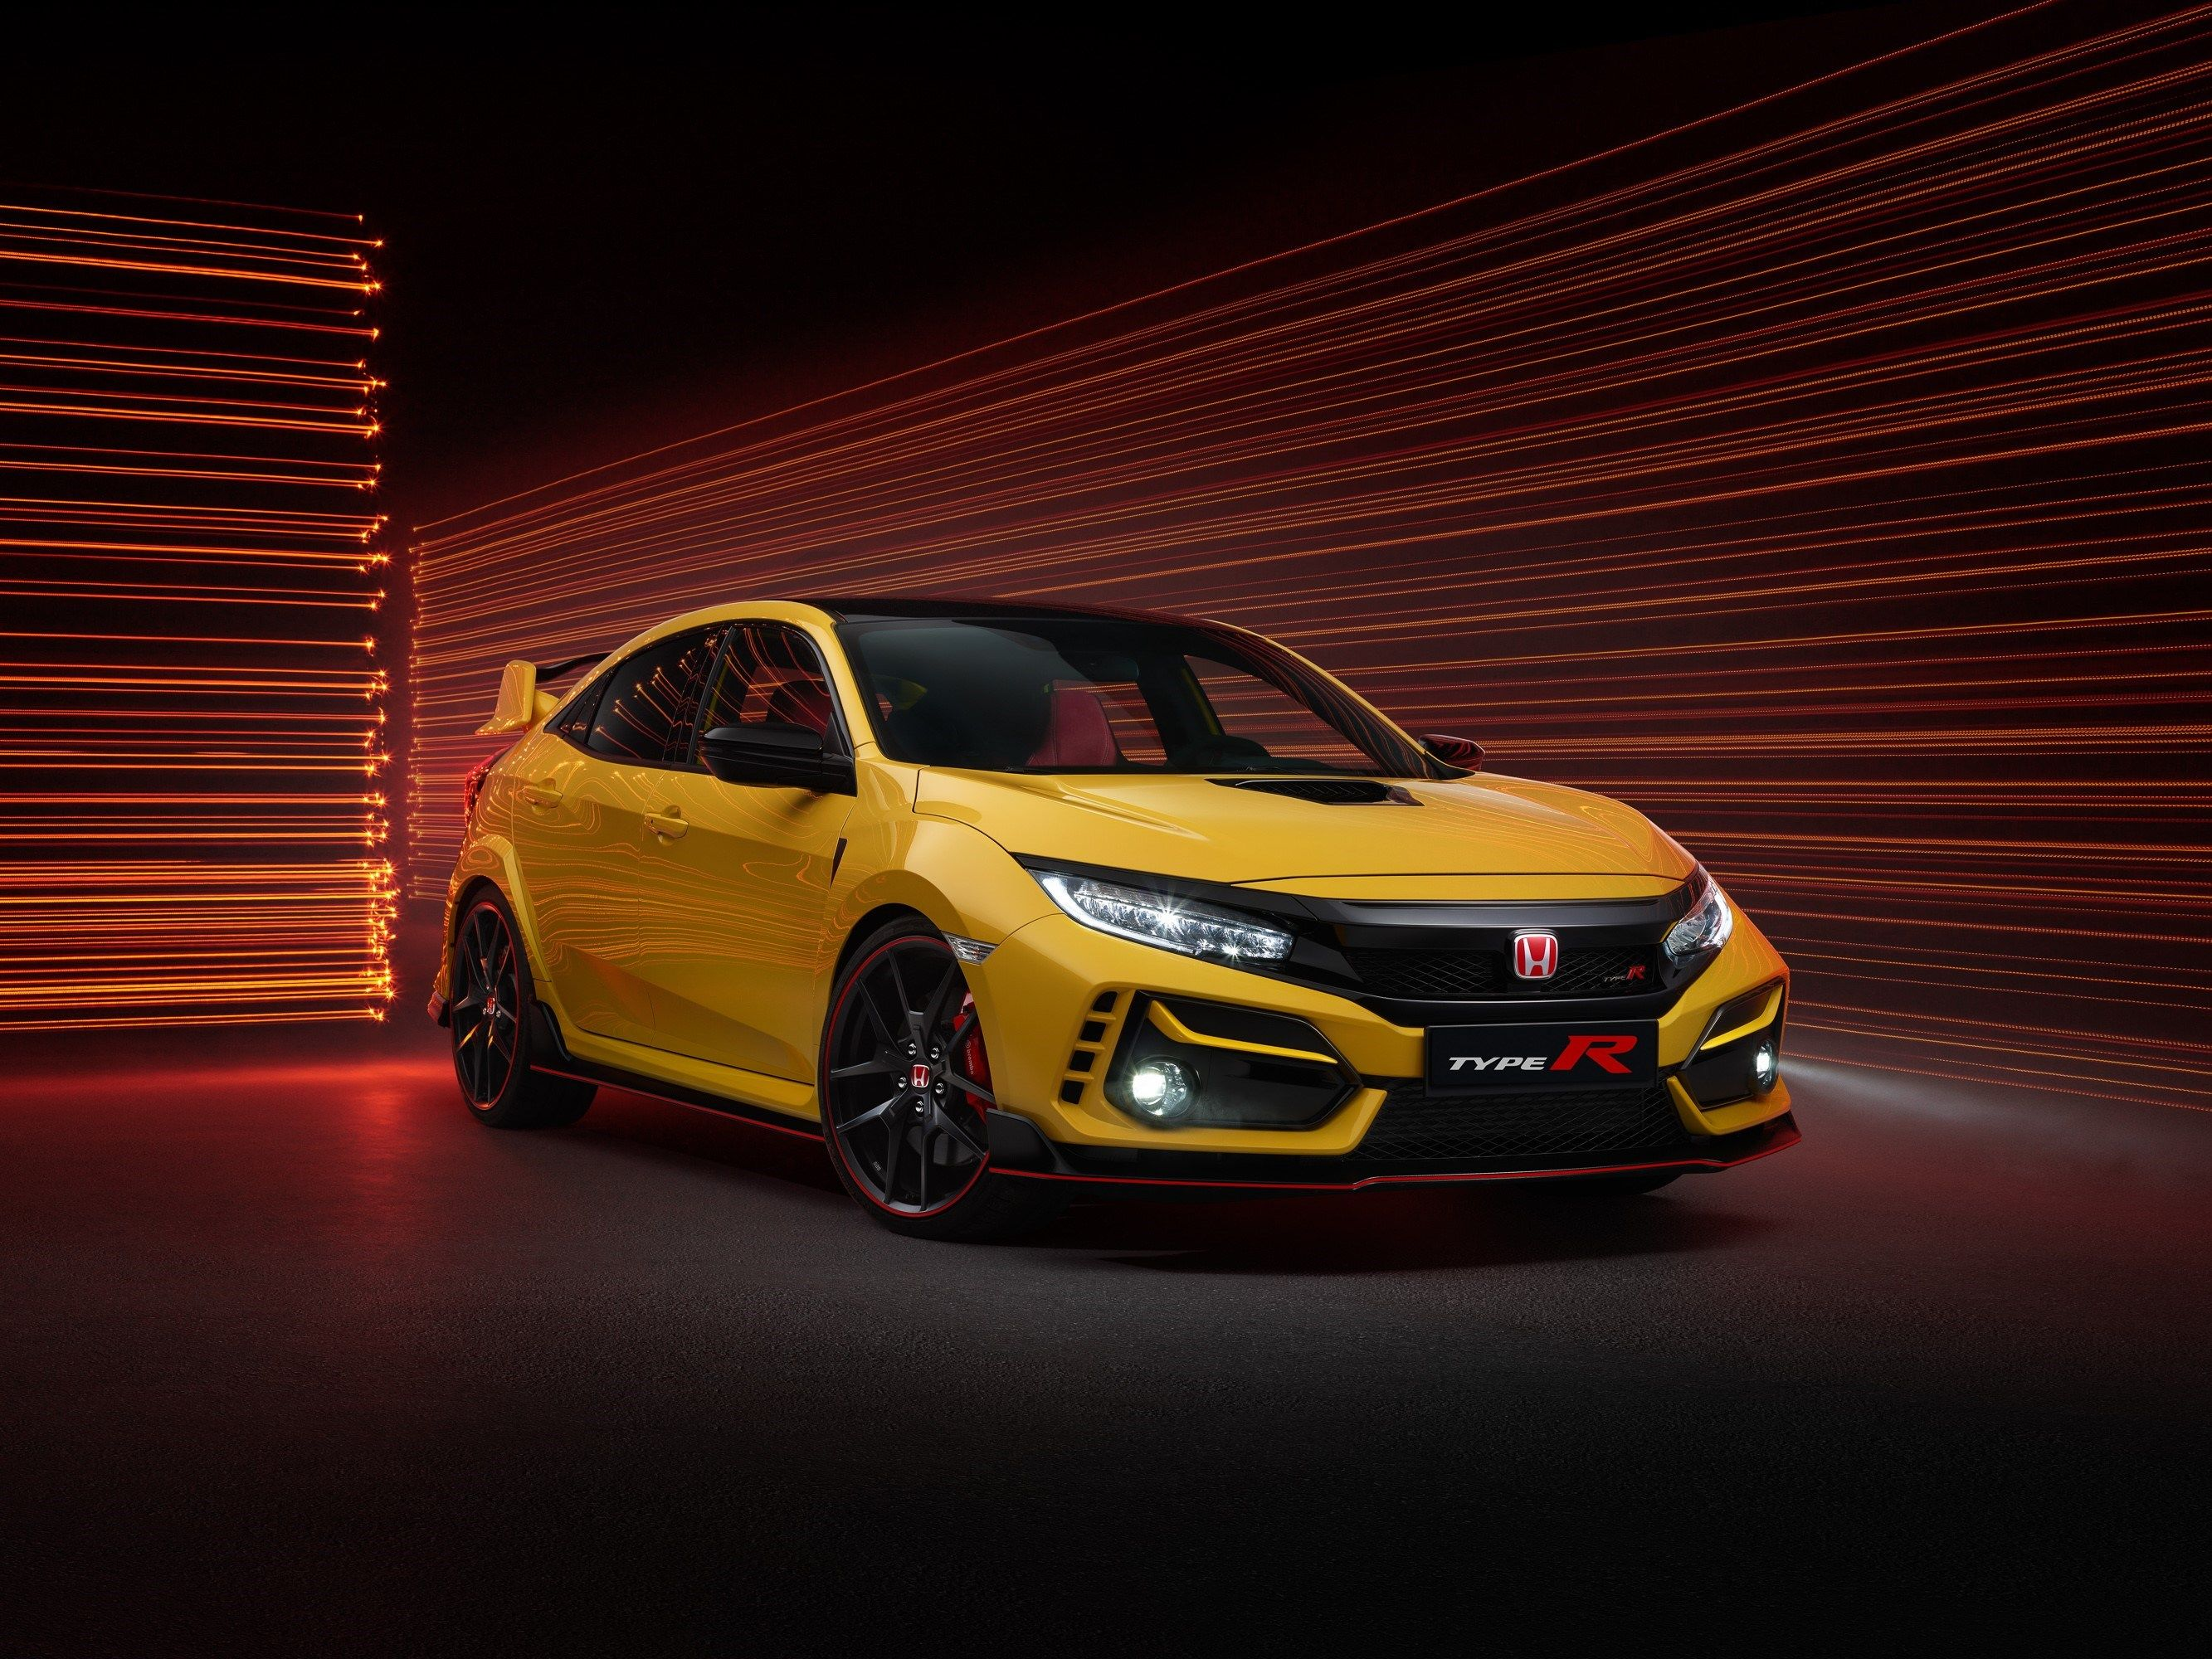 How Would You Feel About A 400 Horsepower Awd Honda Civic Type R Top Speed Honda Civic Type R Honda Civic Honda Type R